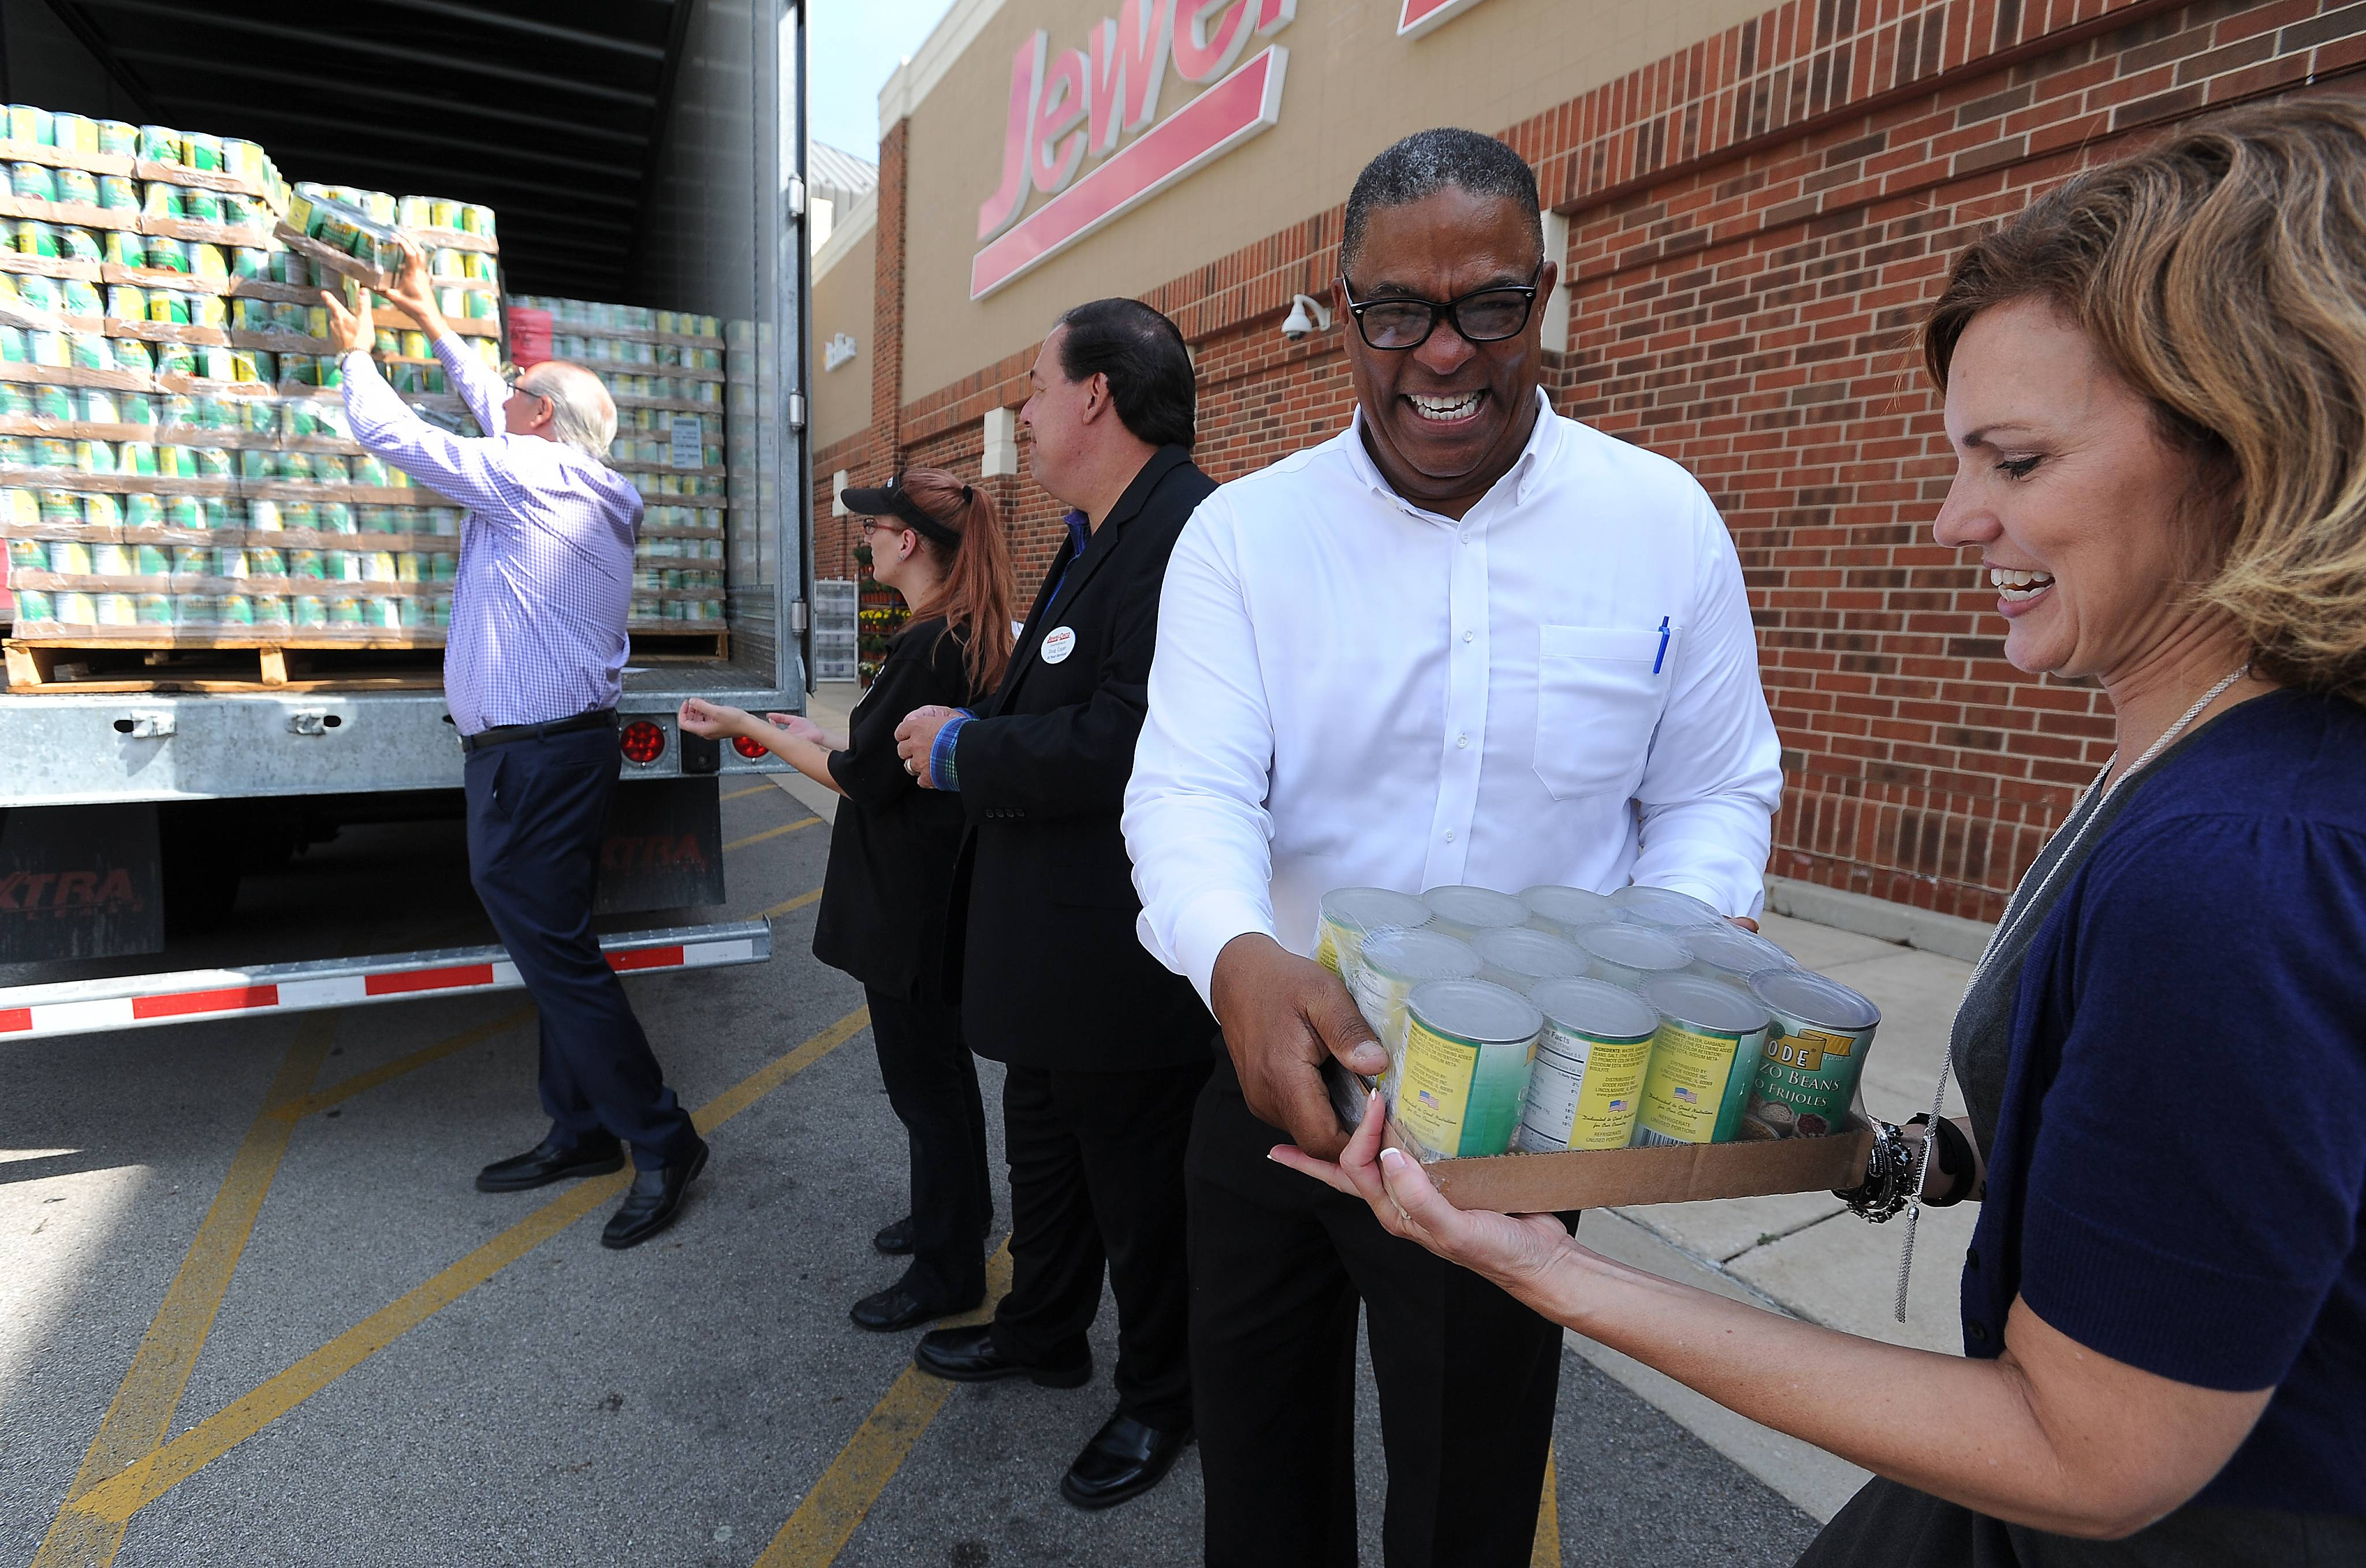 Goode Foods President Emile Johnson of Lincolnshire hands off beans to Julie Yurko, president and CEO of the Northern Illinois Food Bank, as they unload them at the Jewel-Osco in Bensenville. The food will be distributed to local food pantries.